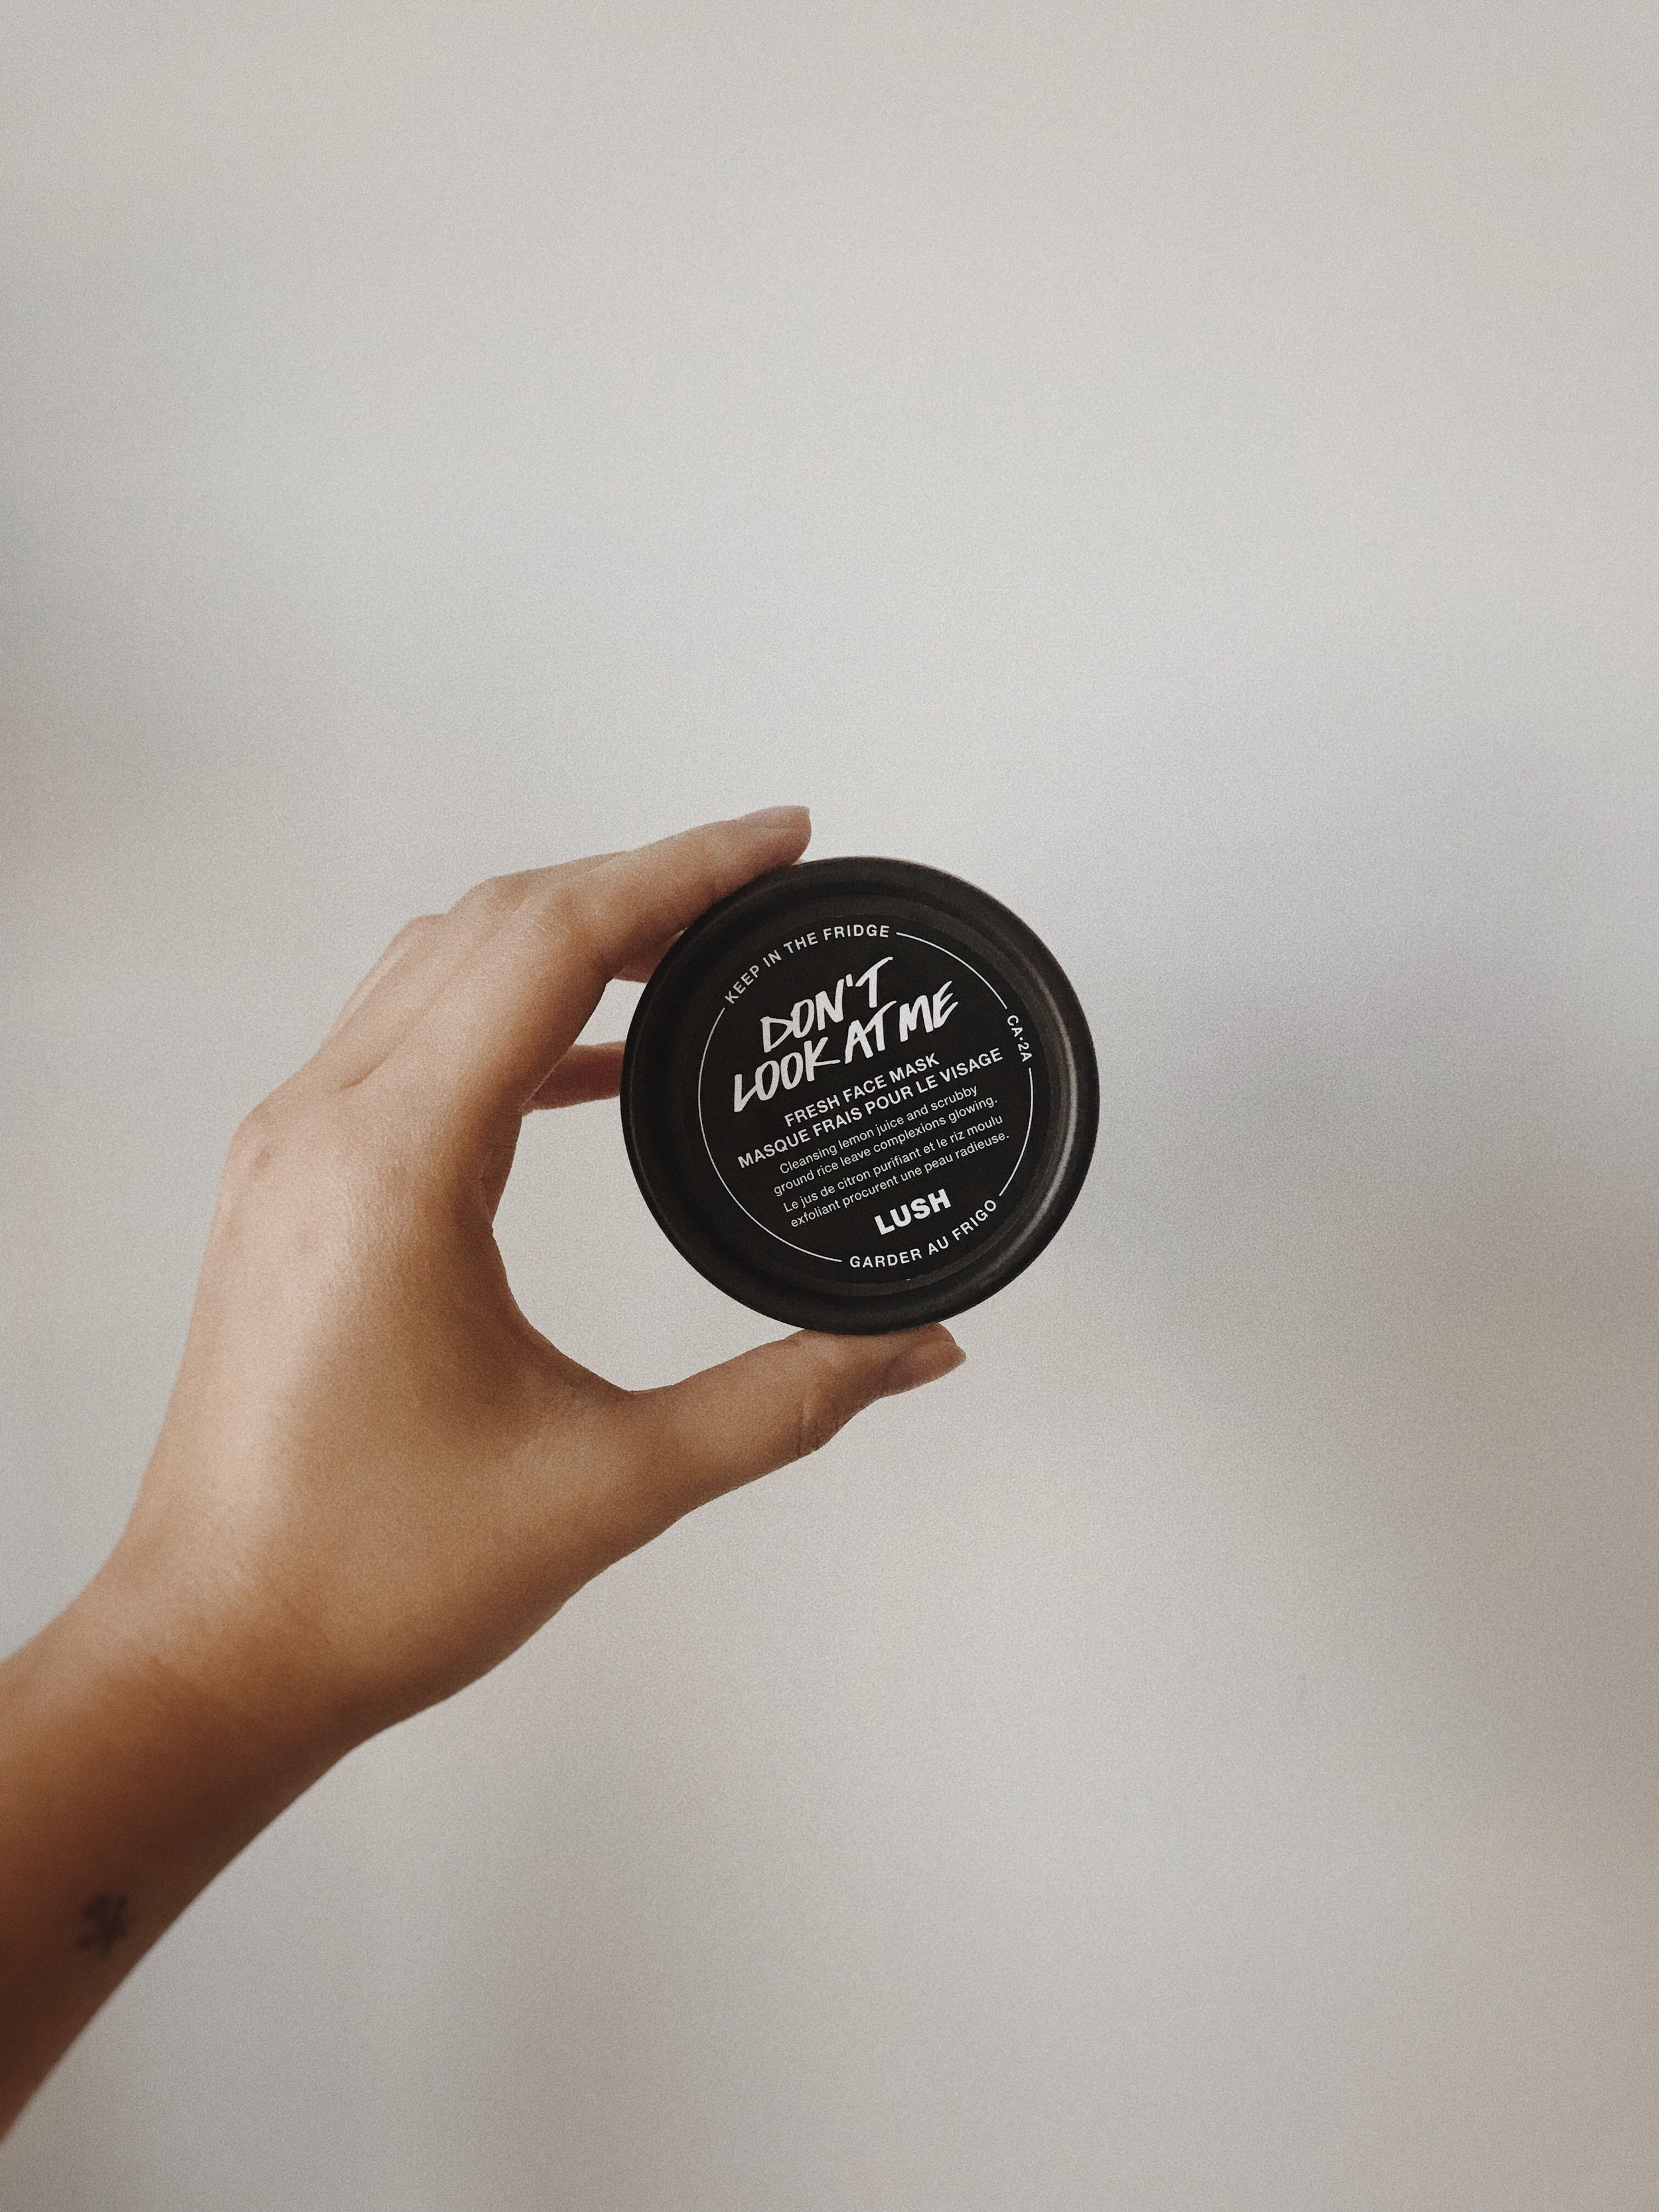 Favourite Lush Products